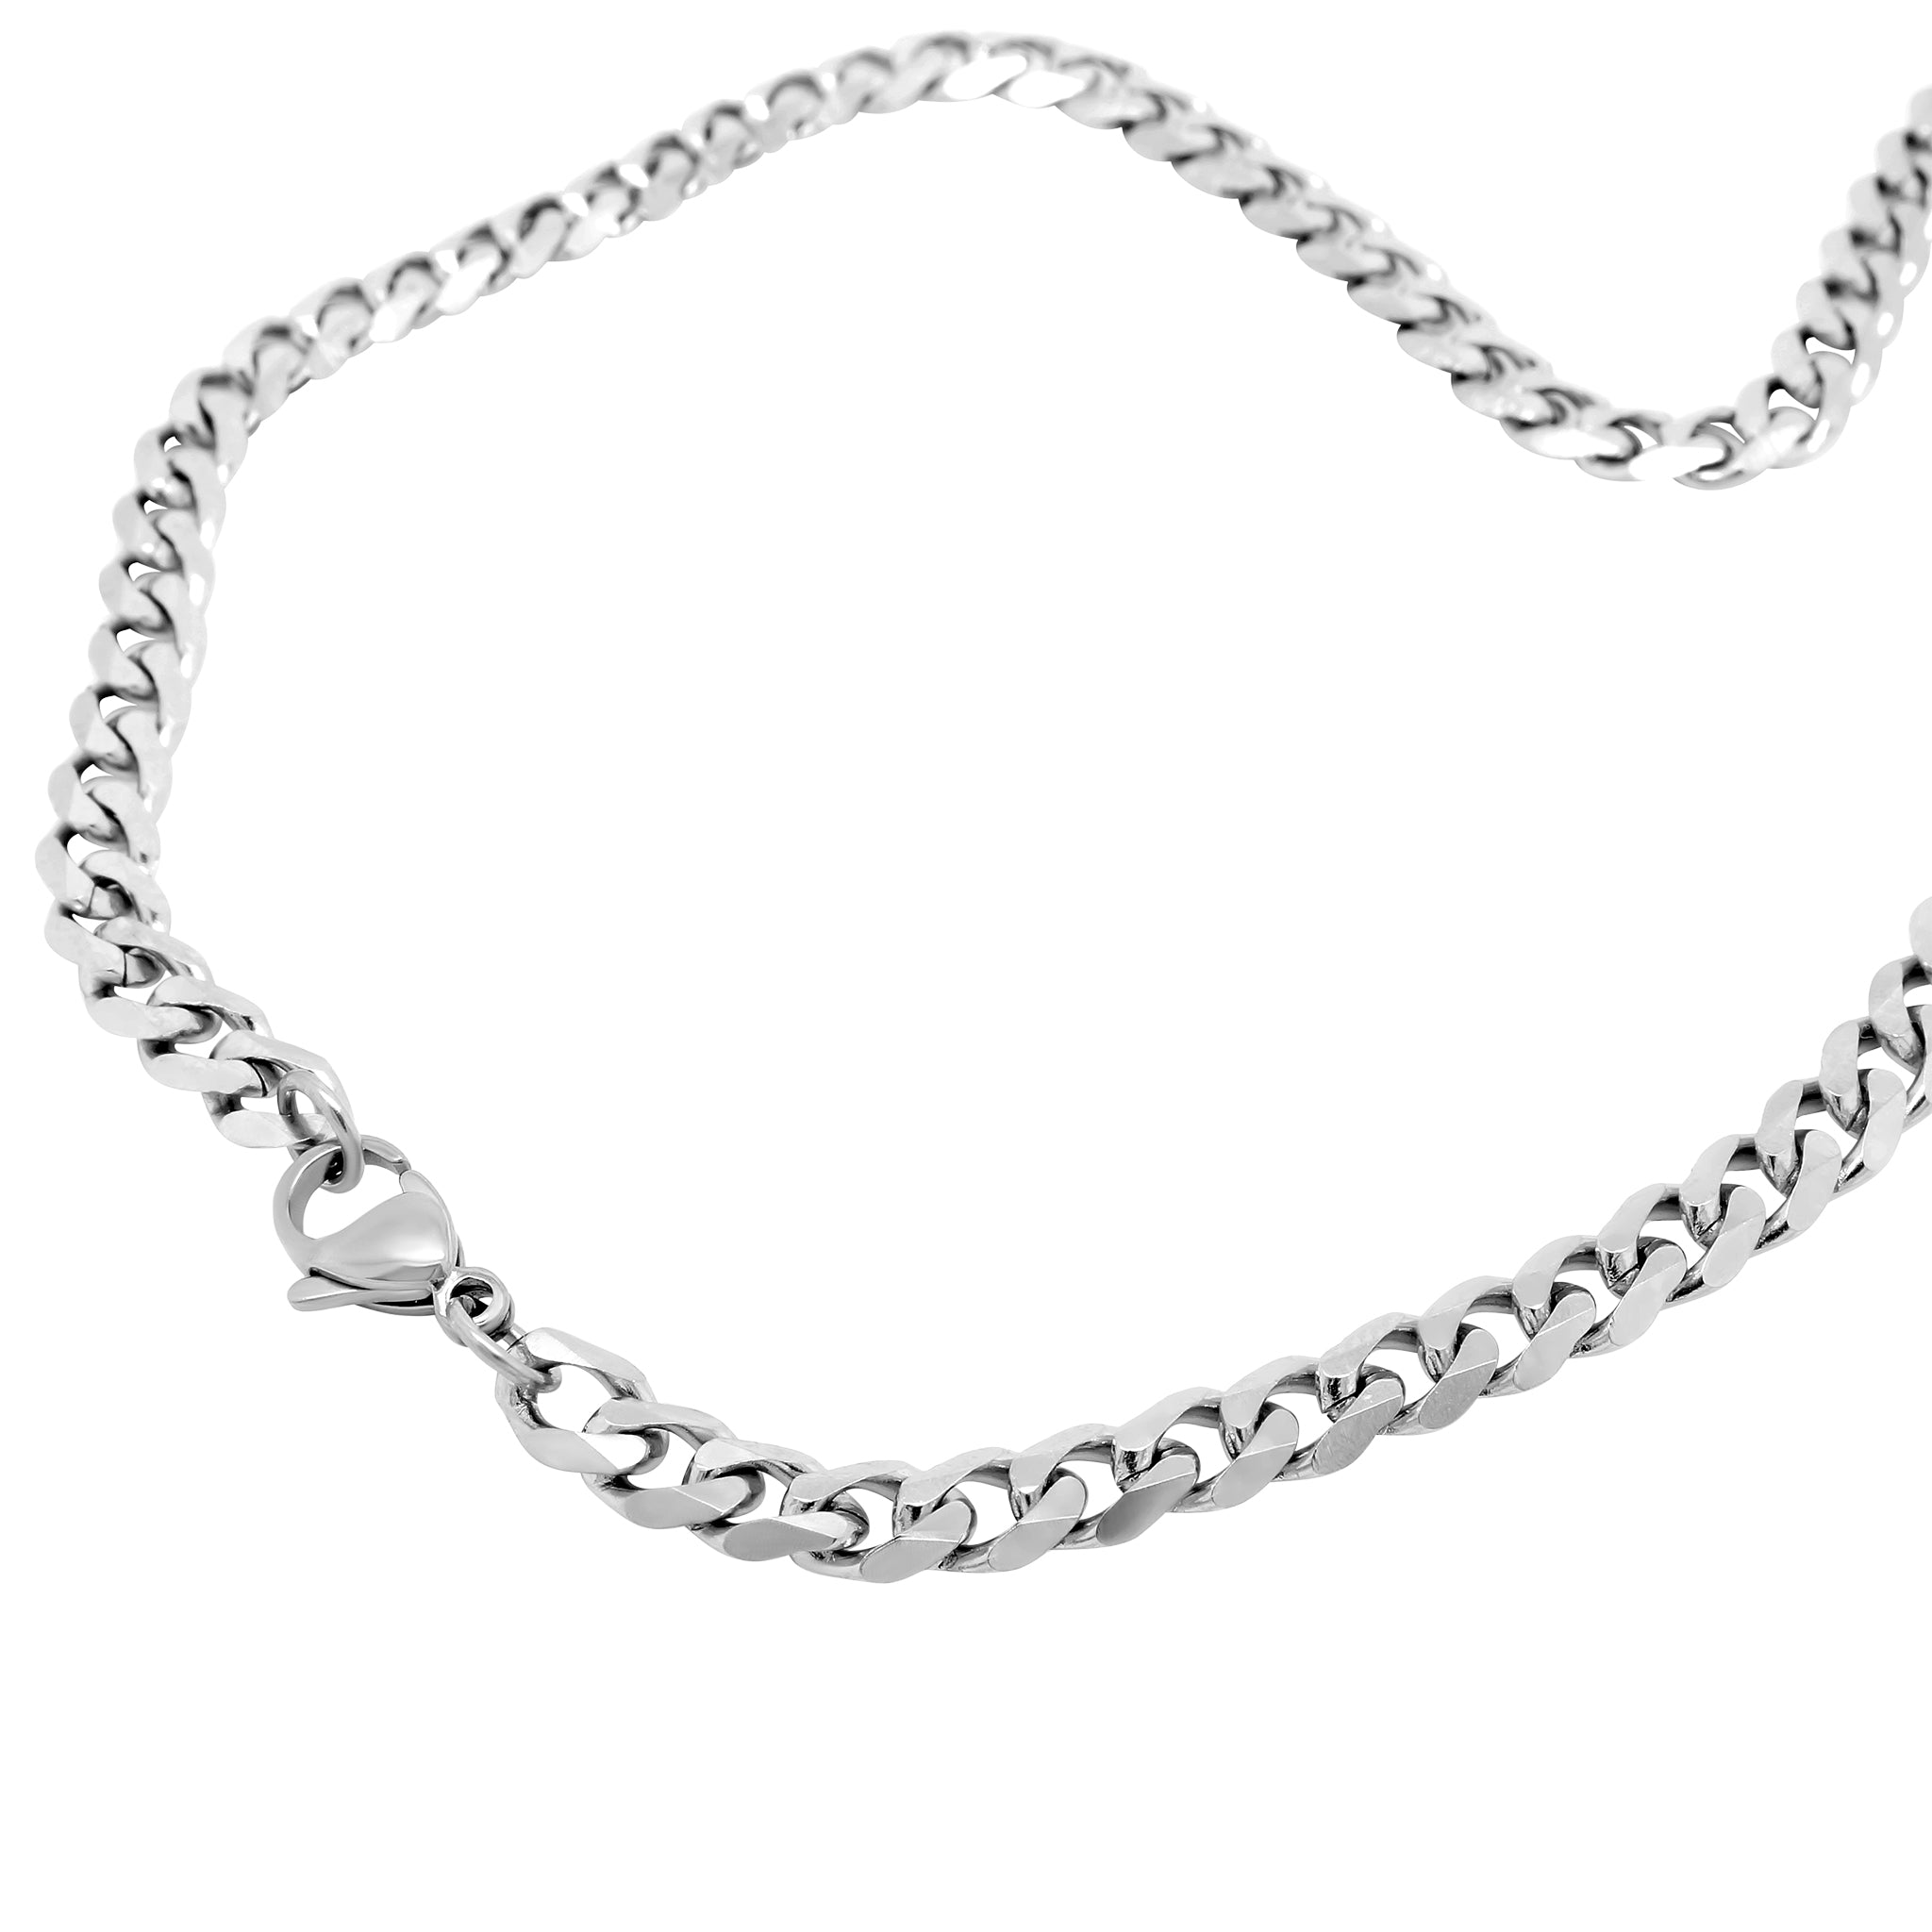 SILVER CHAIN NECKLACE - 3mm